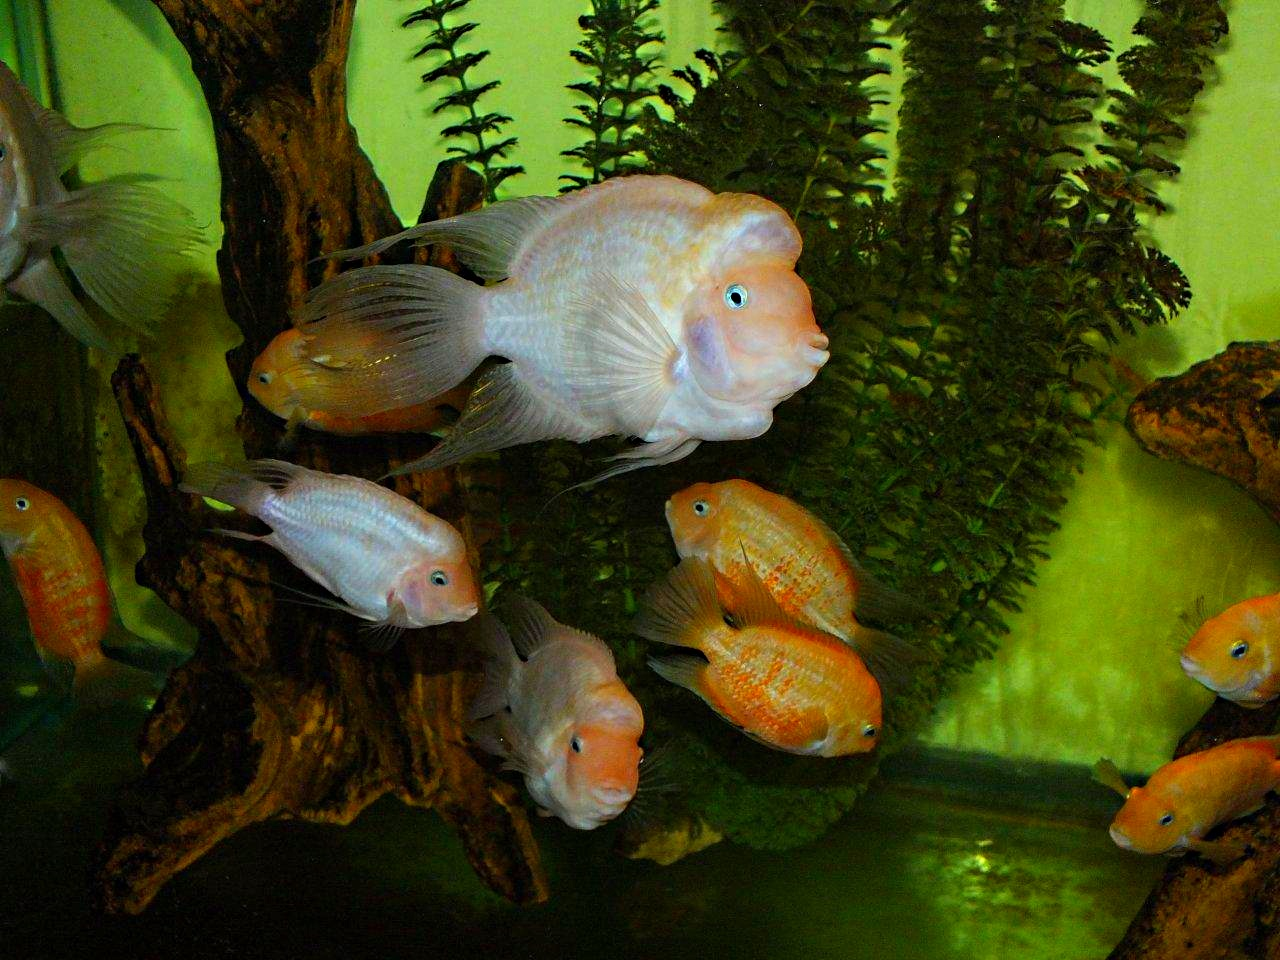 Pink Convict Cichlids (1) by Thomas Peace 2013